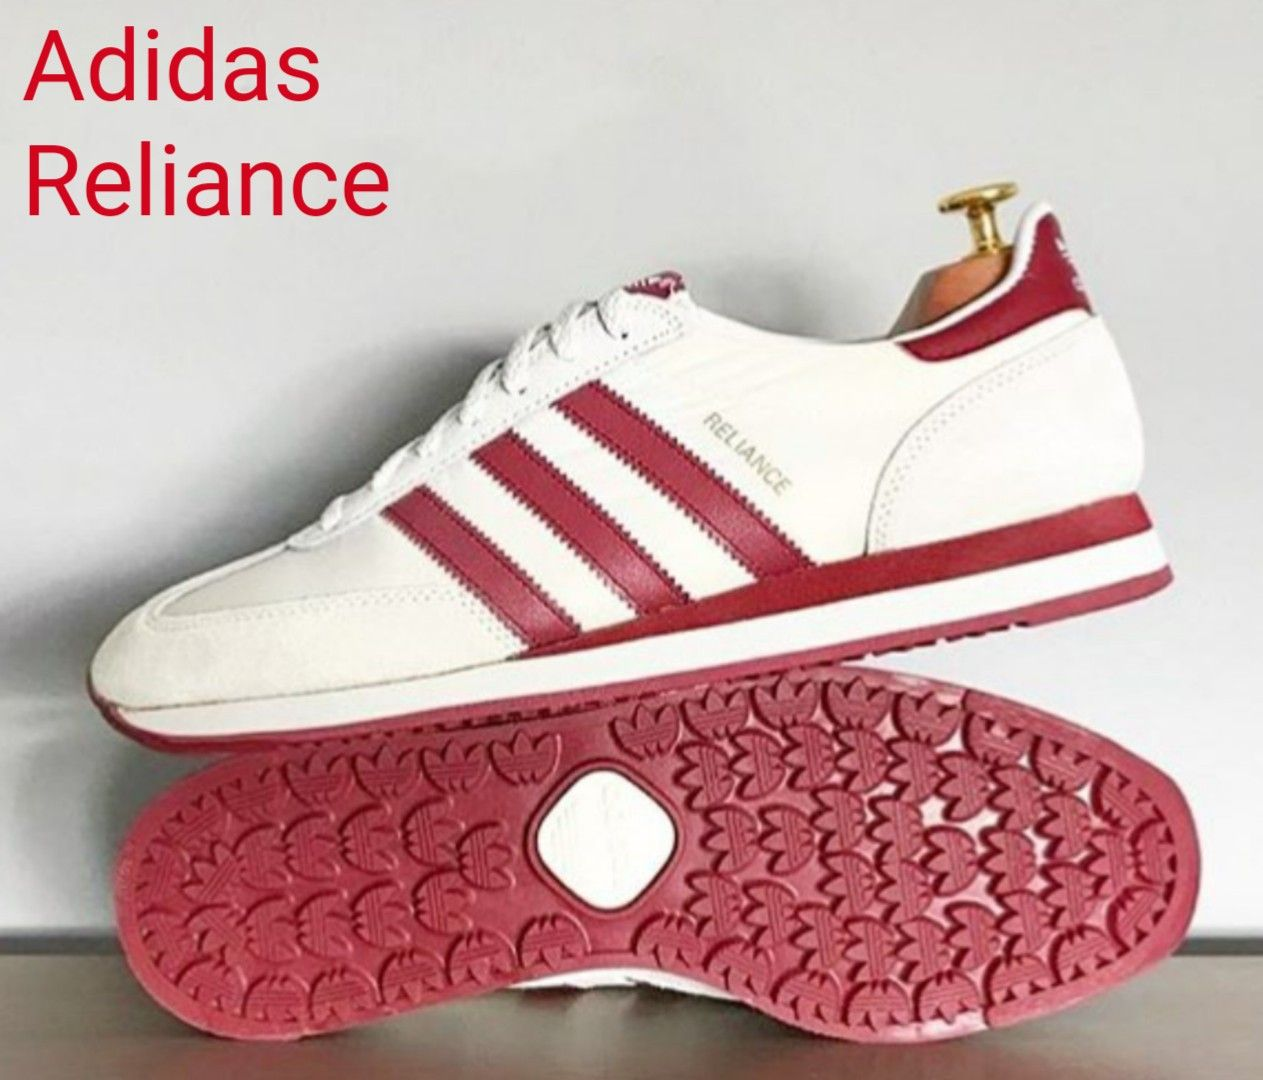 Reliancemade Adidas the 80'scool shoes in Vintage in wOvn0mN8